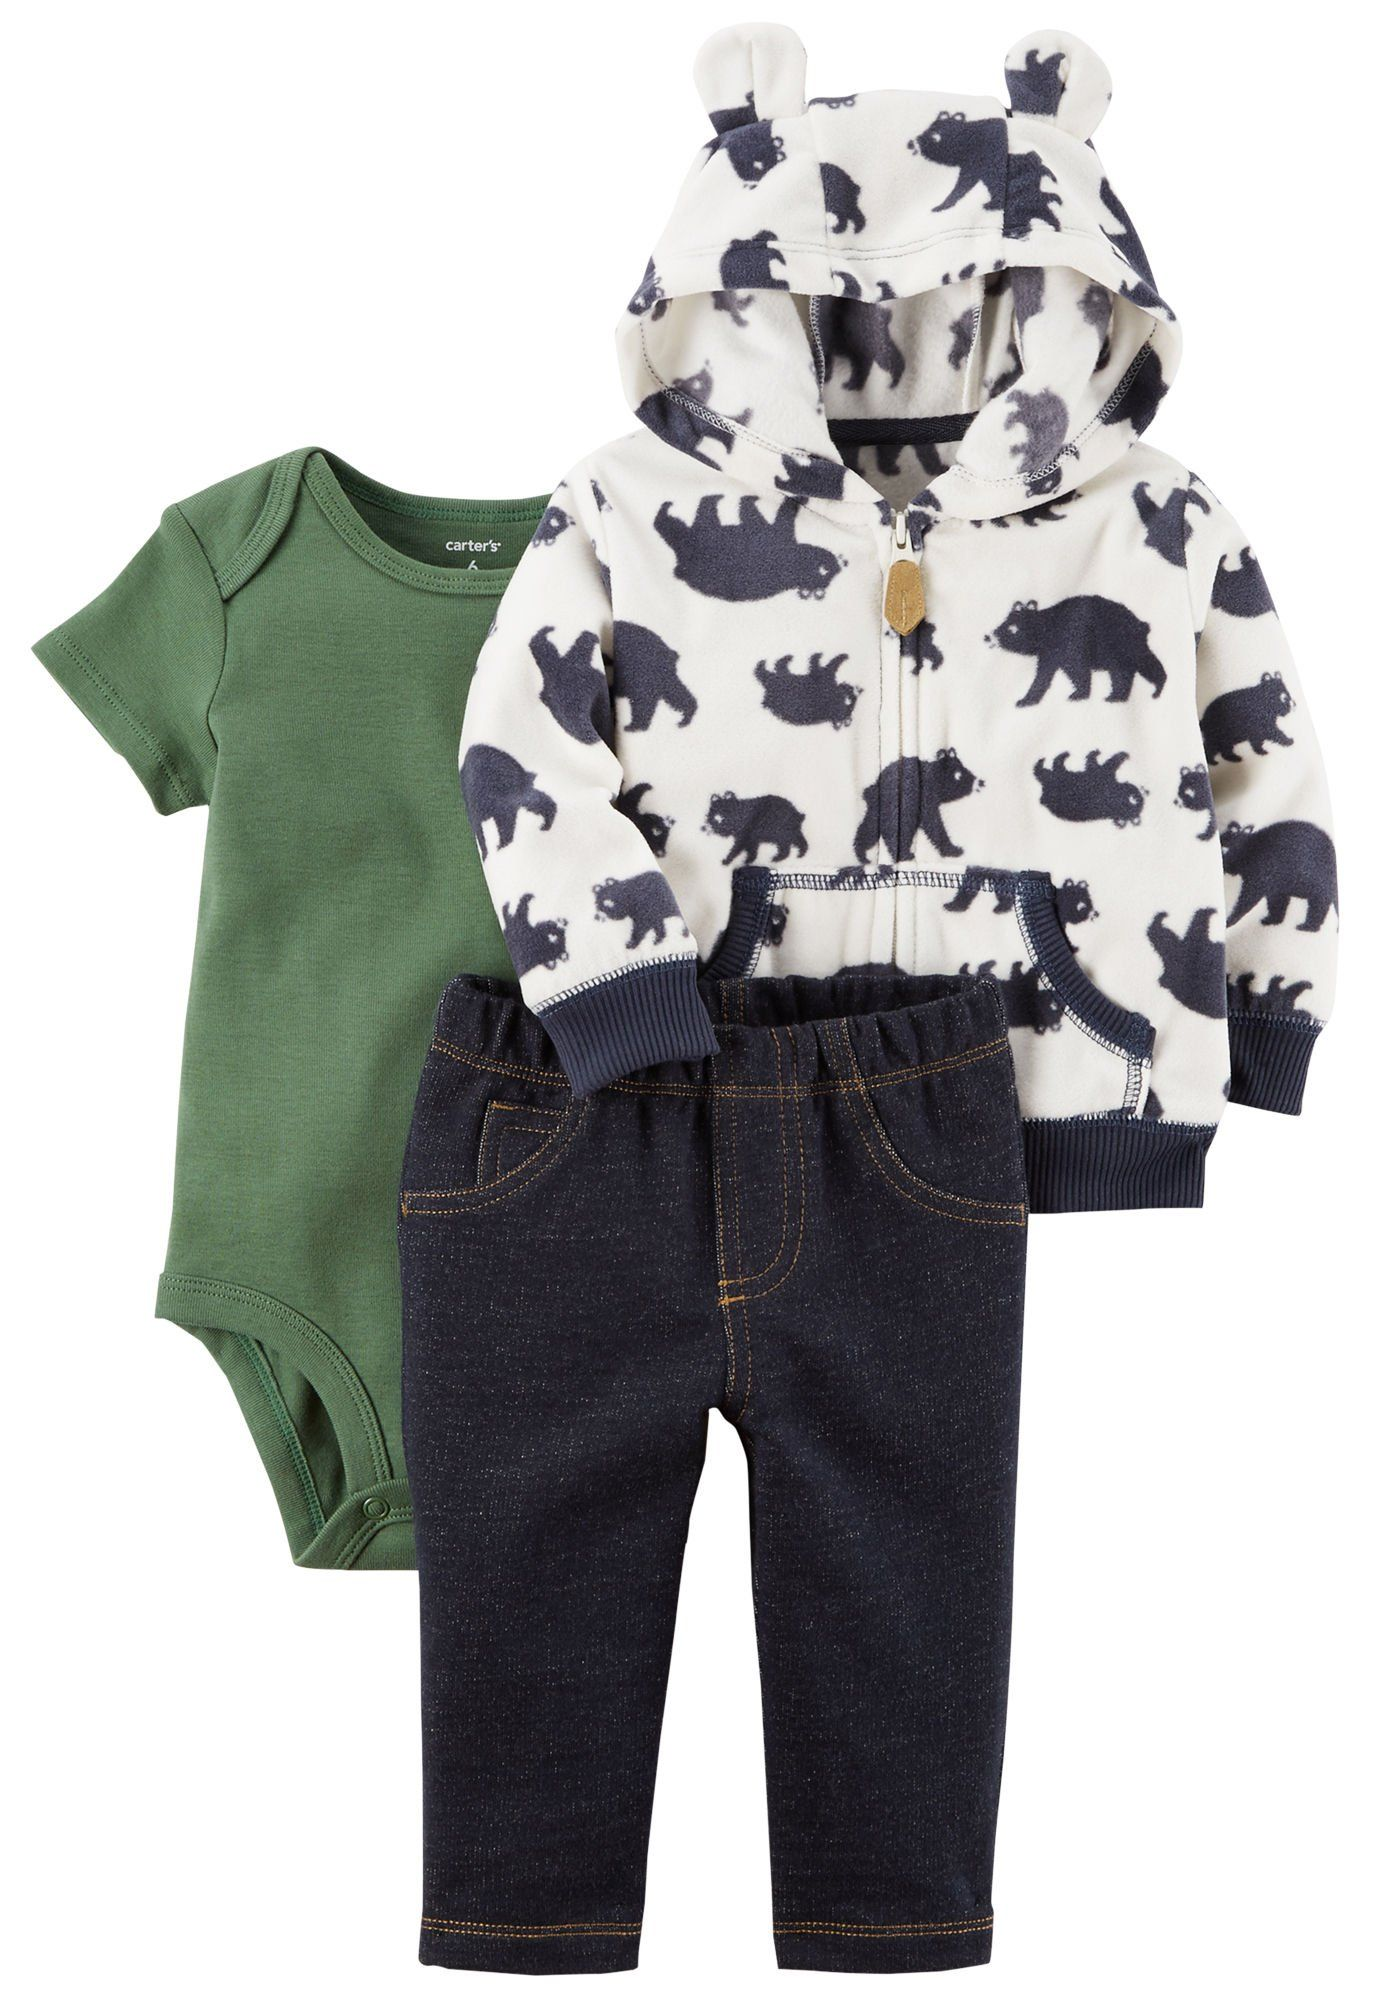 34e58b4bf Carters Baby Boys 324 Months 3 Piece Bear Print Little Jacket Set 9 Months  ** Click image for more details. (This is an affiliate link) # ...